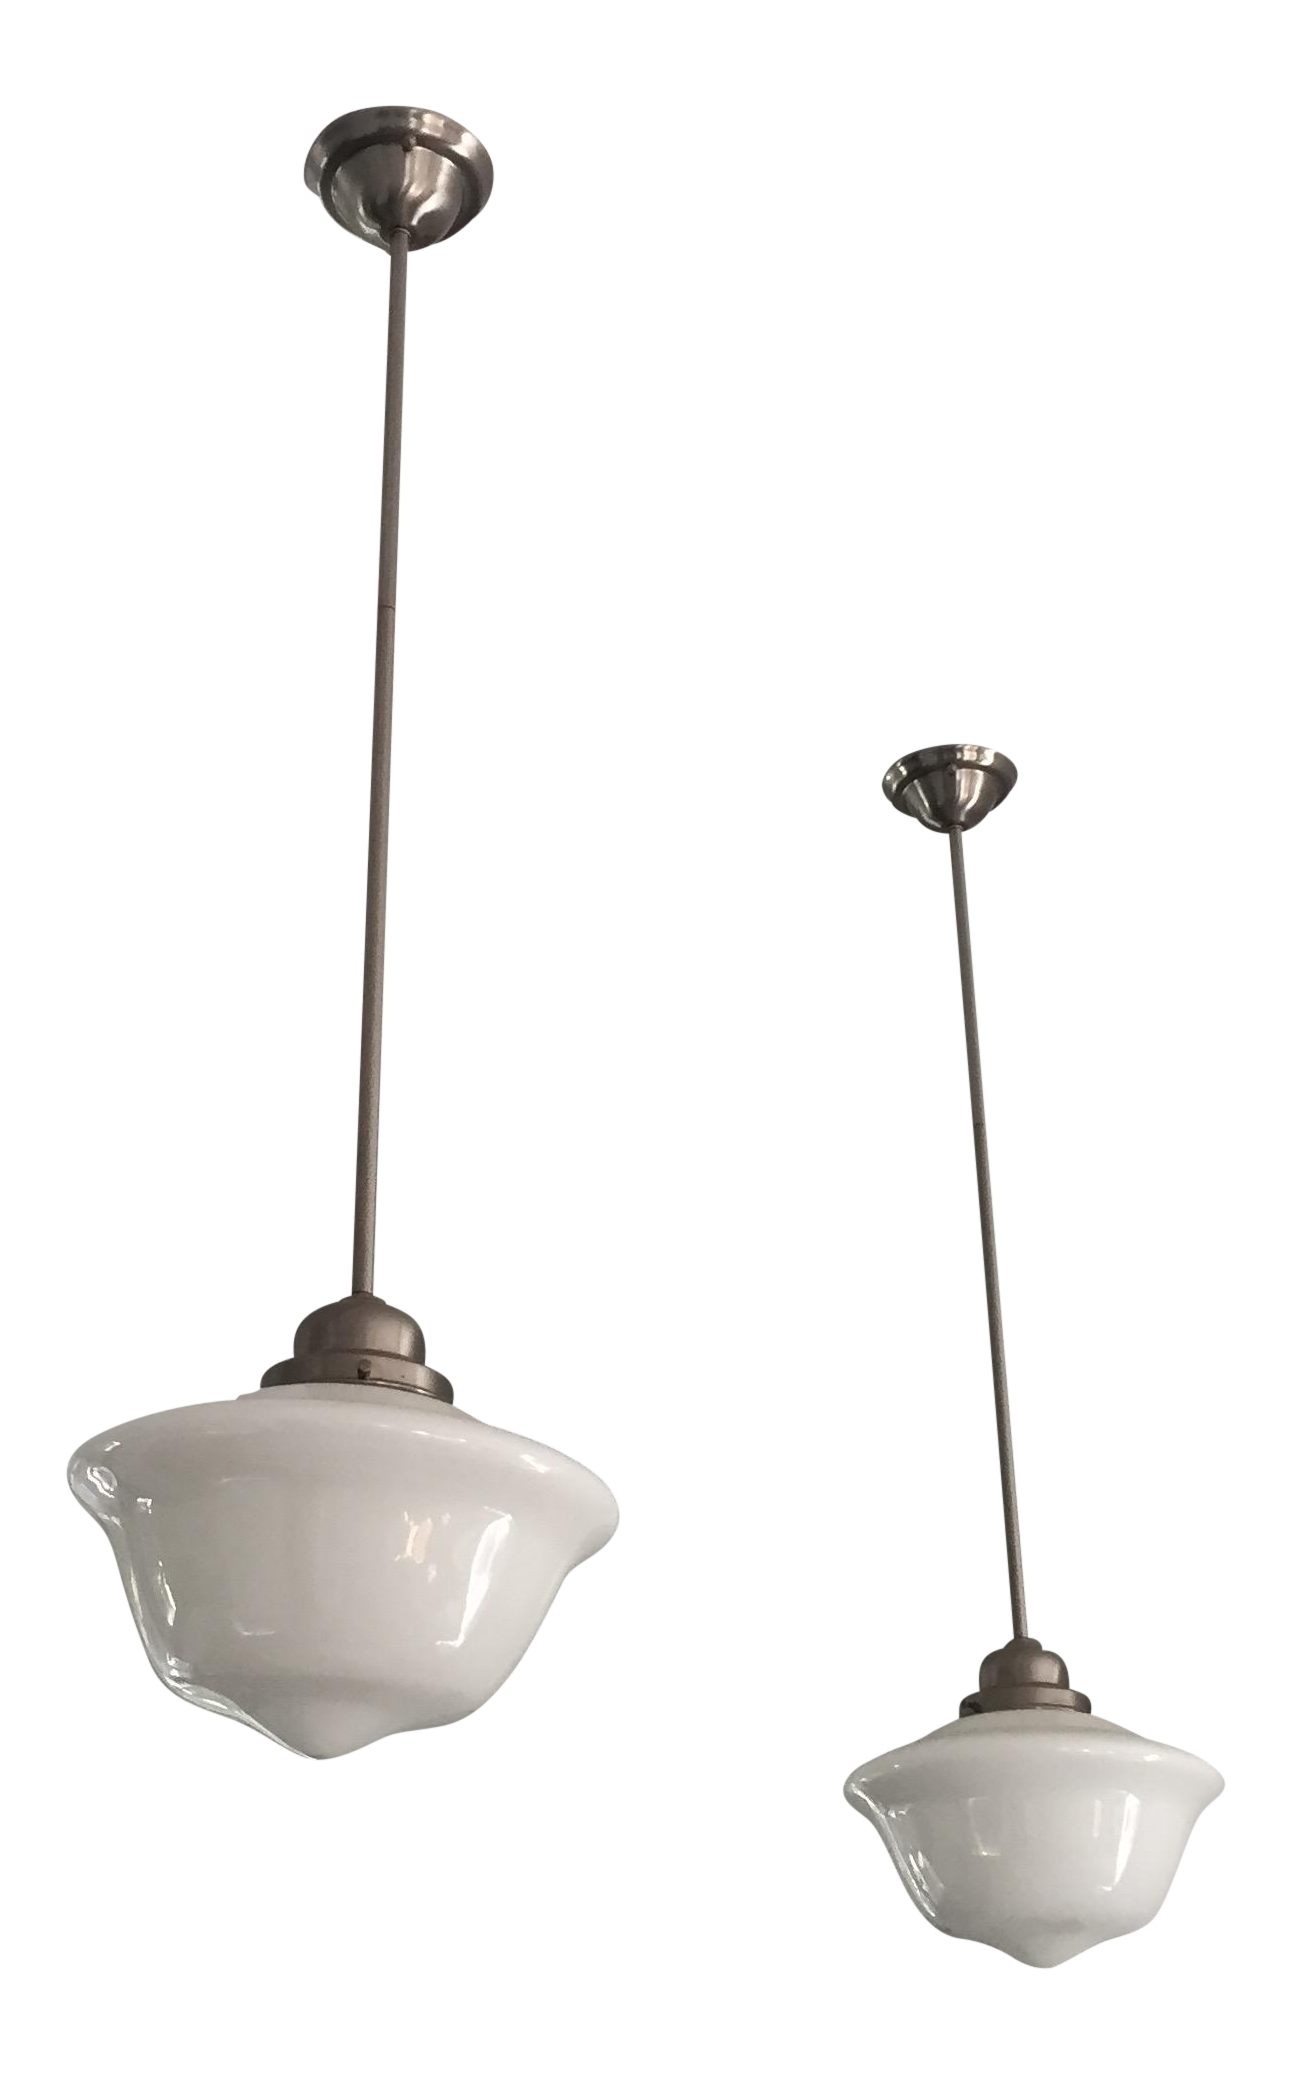 lit schoolhouse di ll products linea close pc liara pendant lavagna